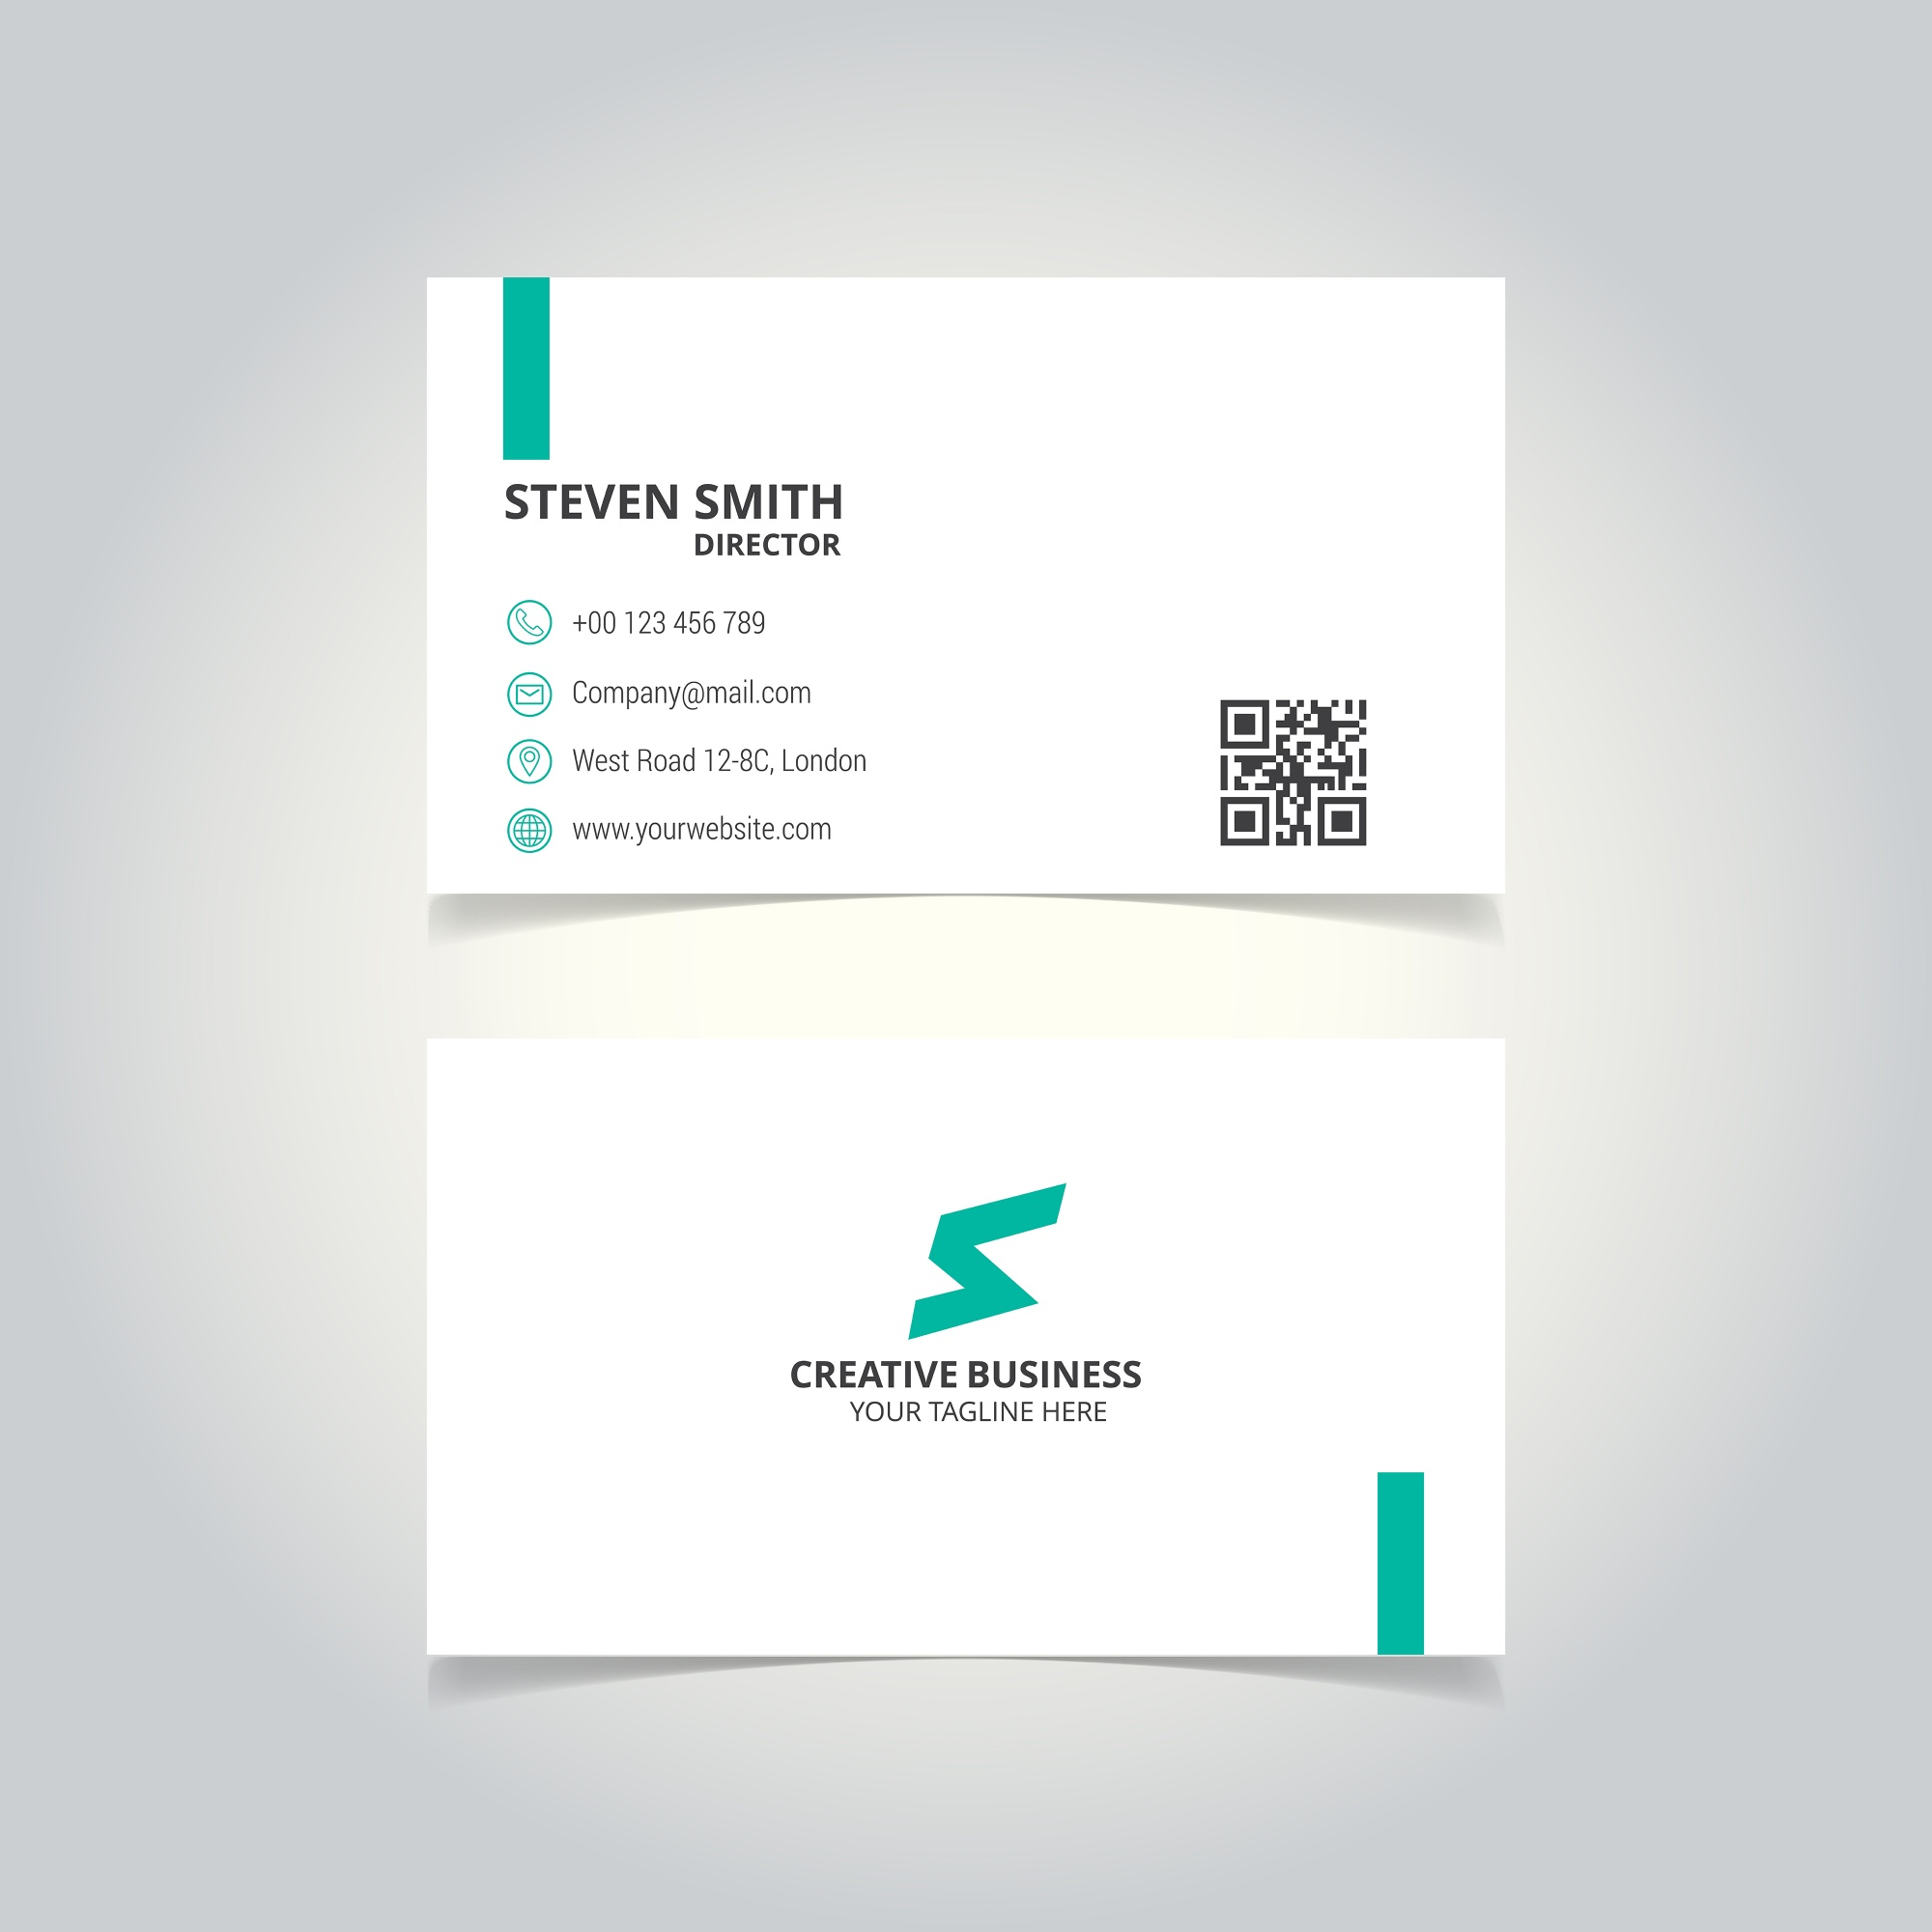 S carta logotipo Minimal Corporate Business cartão com cor branca e verde